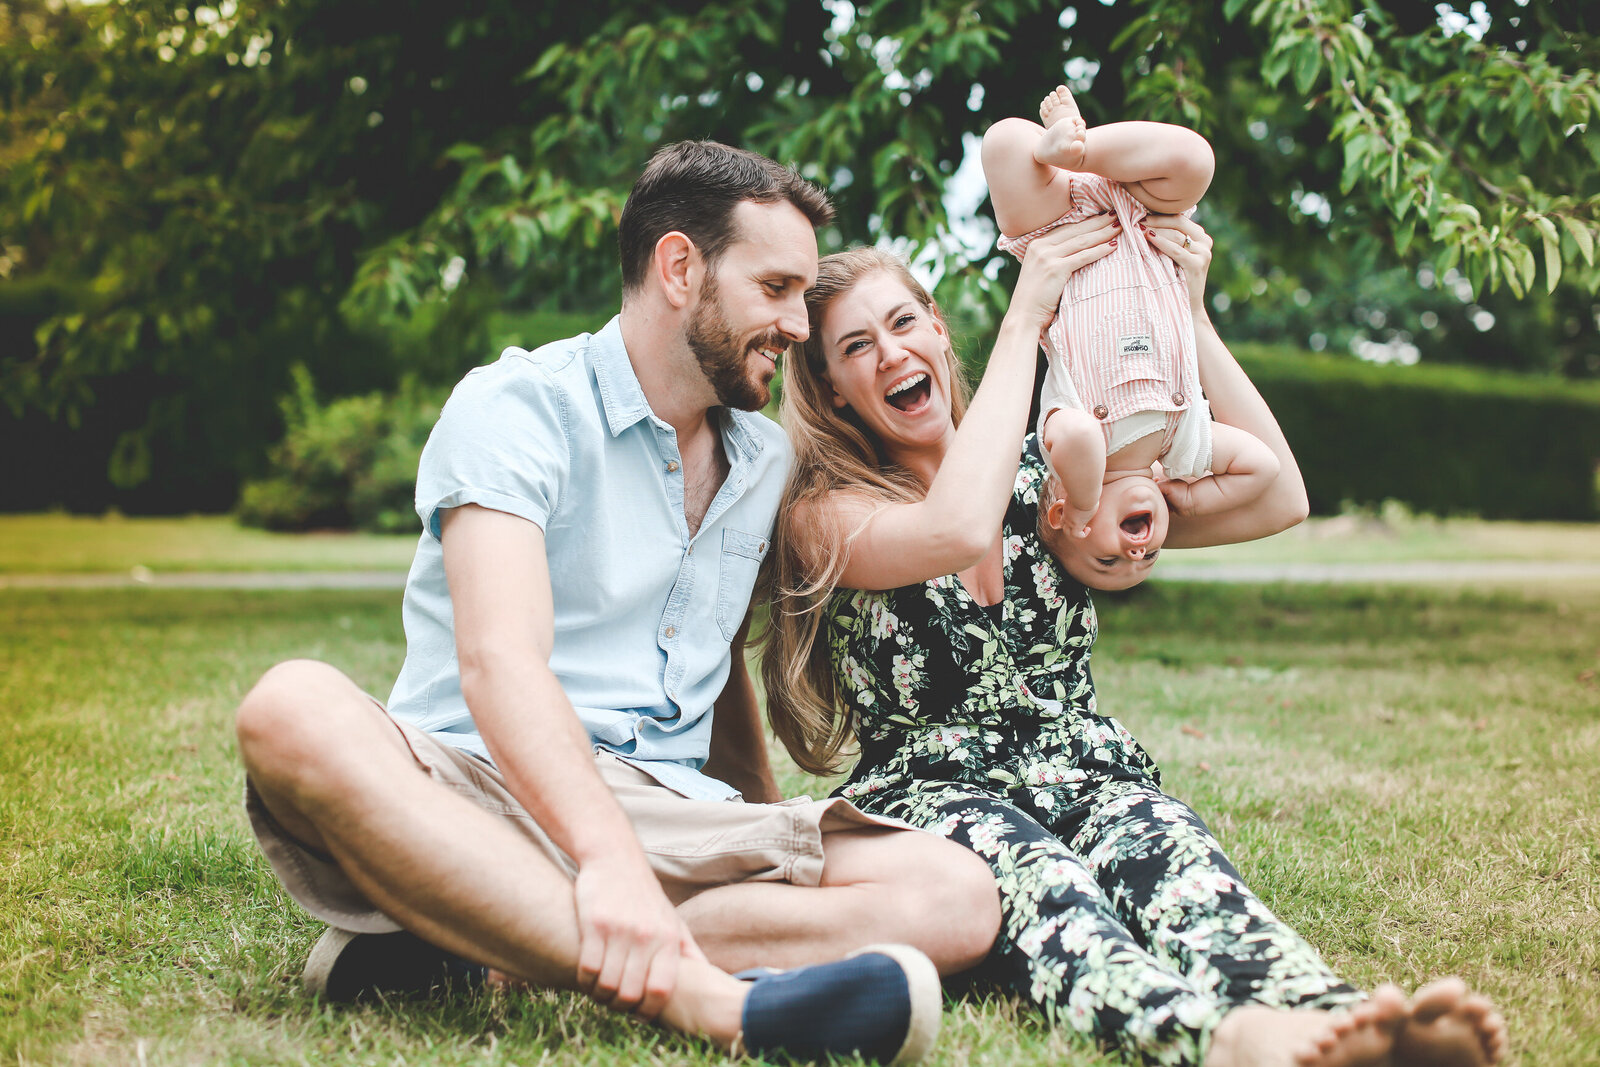 FAMILY-PHOTOGRAPHER-IN-MILFORD-SURREY-HANNAH-MACGREGOR-0007